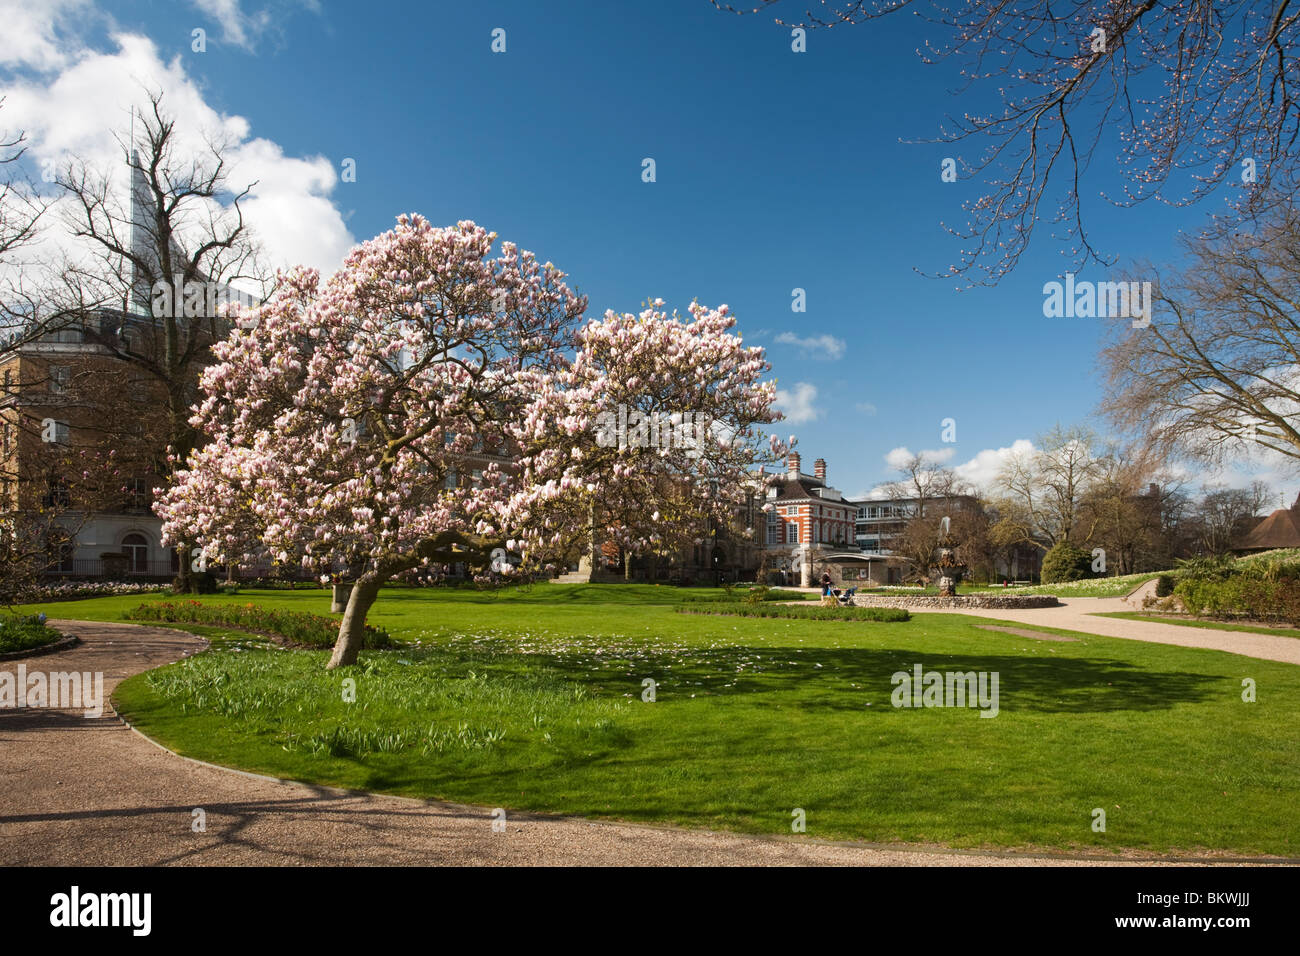 Blossoming magnolia tree in Forbury Gardens in the centre of Reading, Berkshire, Uk Stock Photo